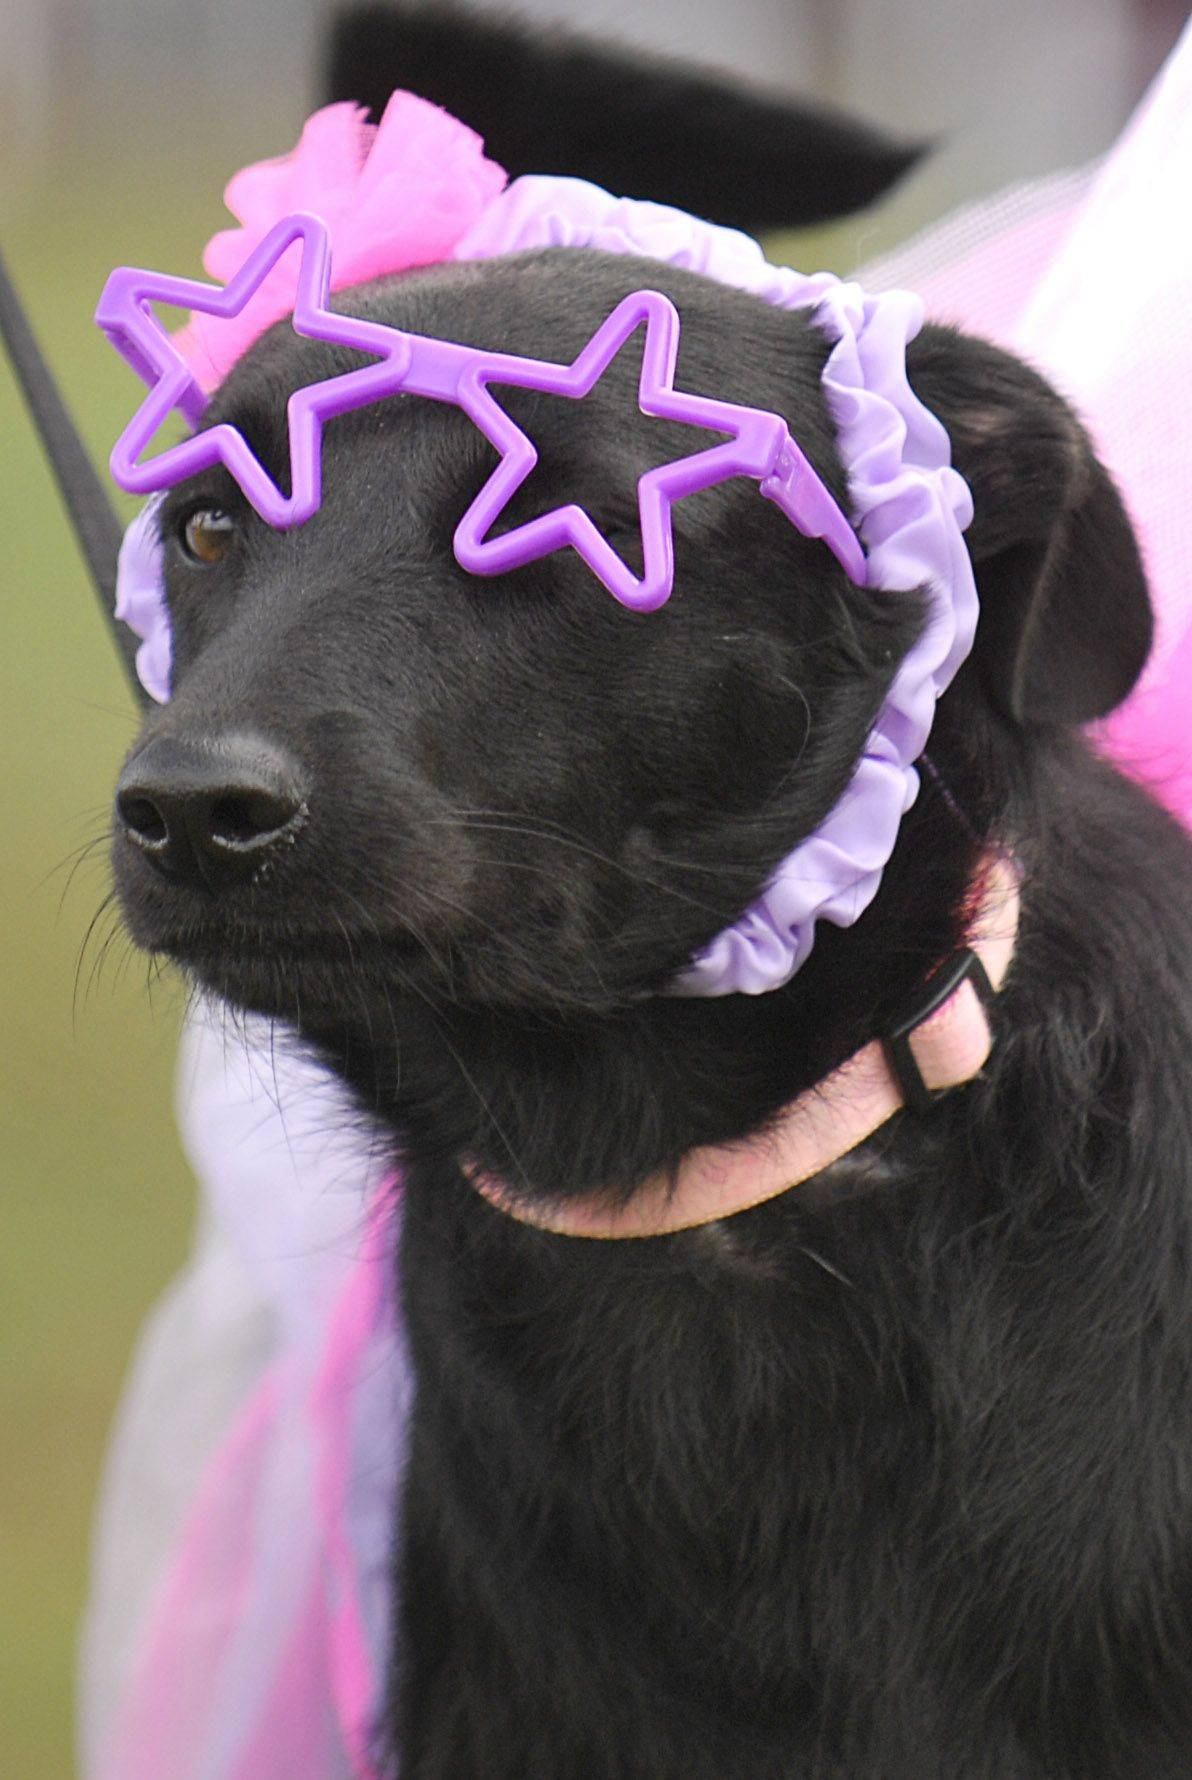 Sara enjoys wearing her glasses, says owner Jaki Herrmann, 13, of Plato Center. Sara was dressed up as a fairy with star glasses for the pet parade at the second-annual Dog-tober Fest at Deicke Park in Huntley on Saturday, October 2.